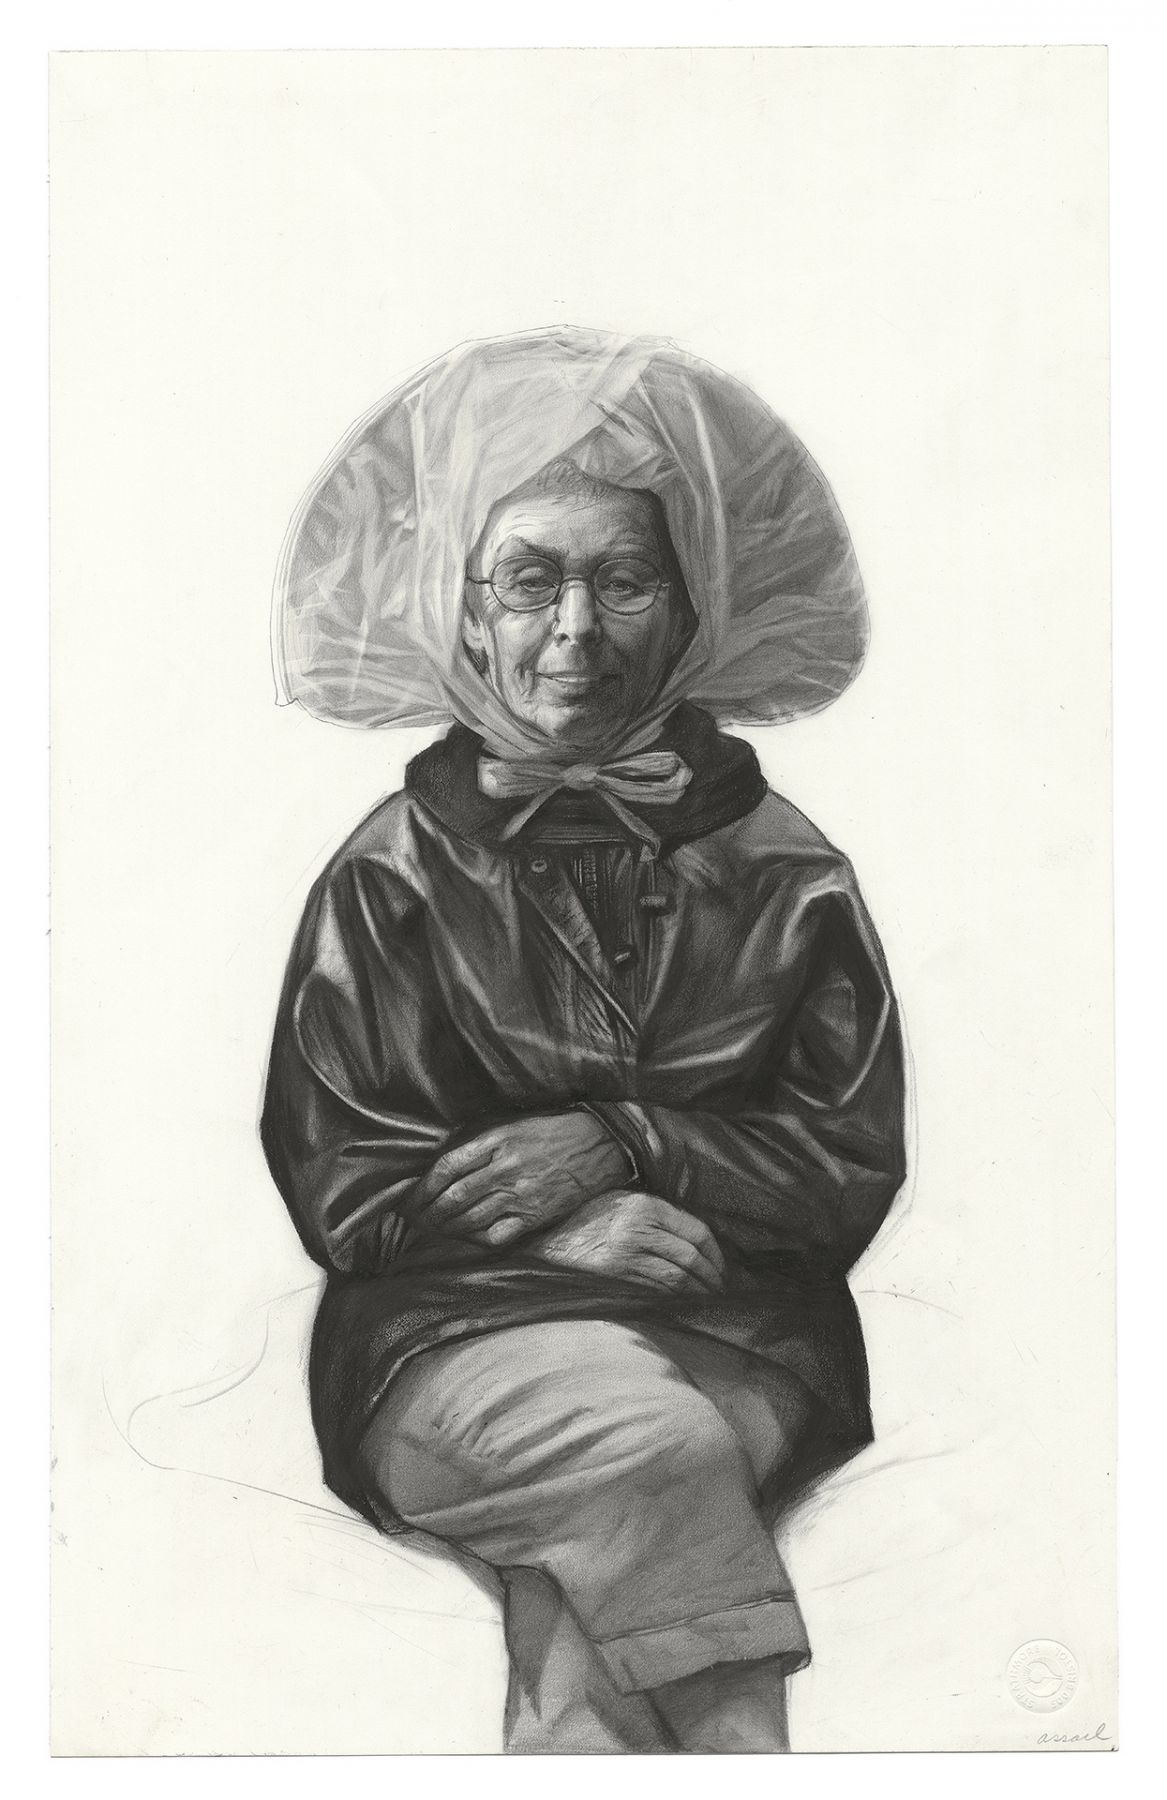 Steven Assael, Ruth, 2011, graphite on paper, 20 x 12 1/2 inches